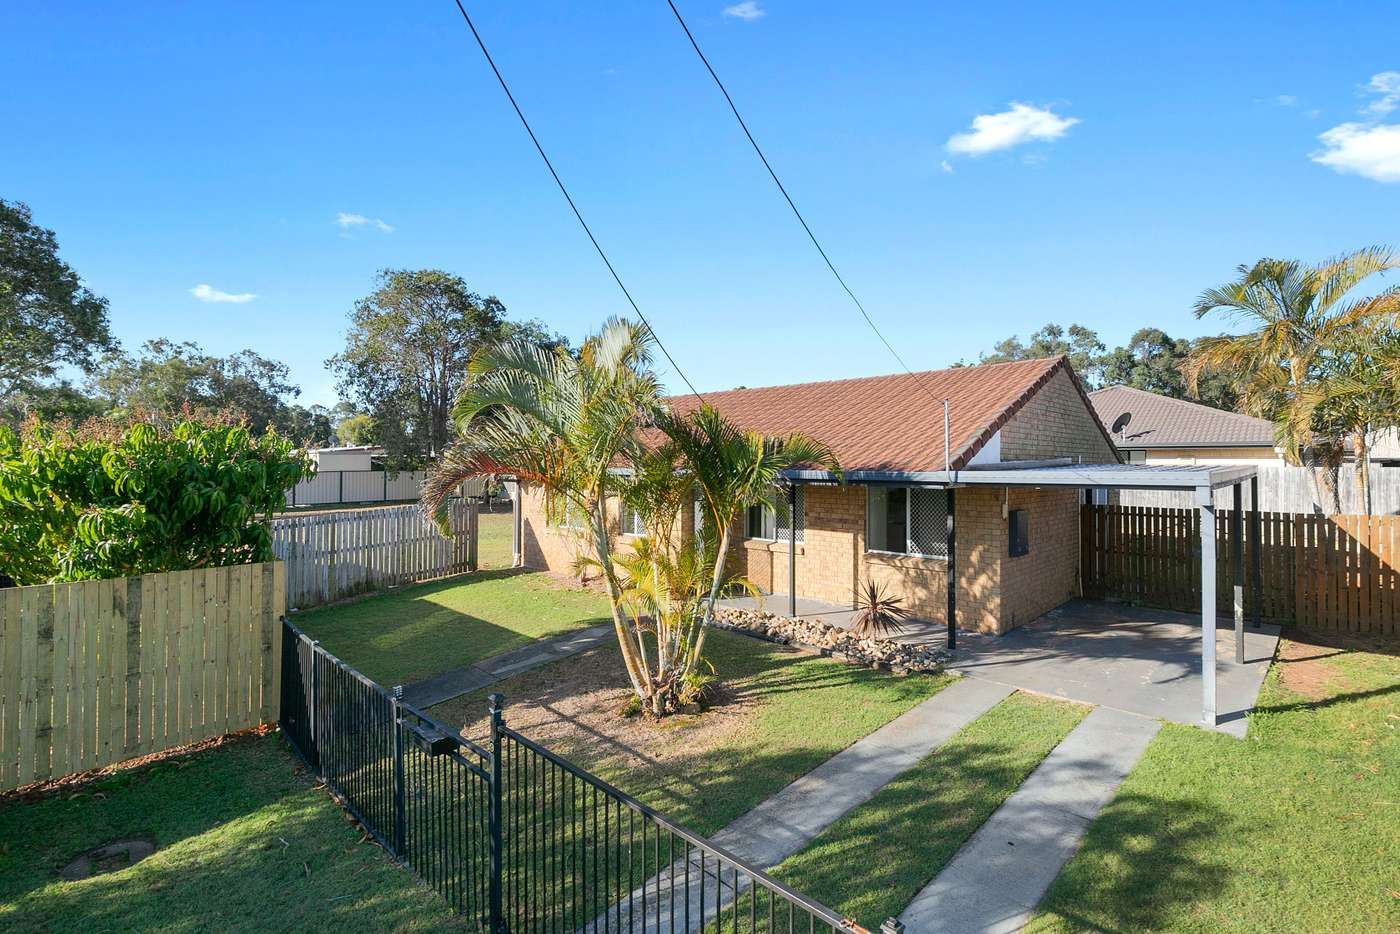 Main view of Homely house listing, 9 Rofail Court, Thorneside QLD 4158